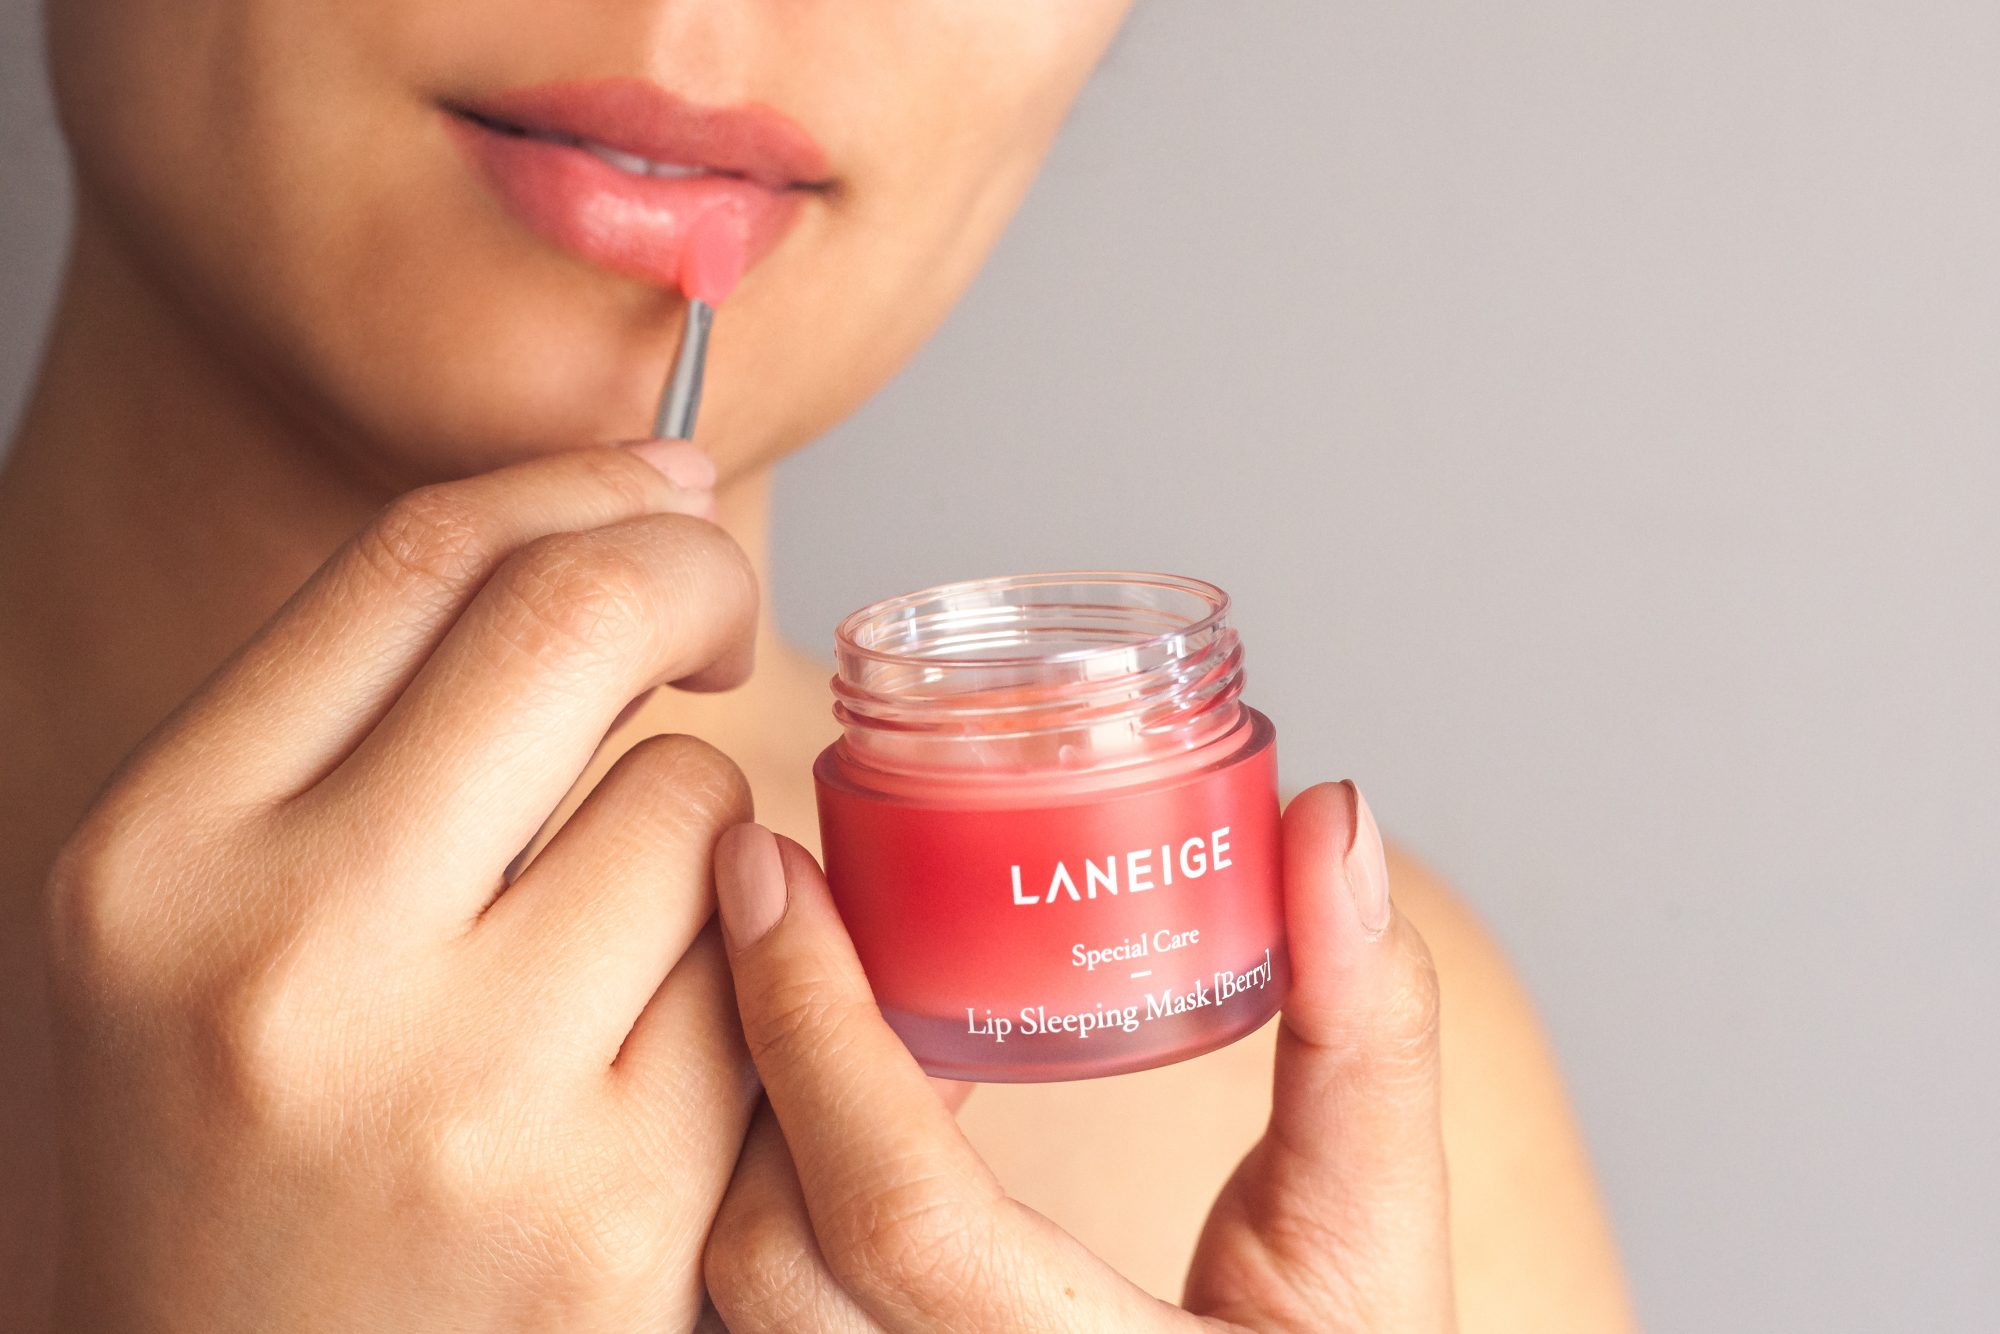 Lip sleeping masks have also been around for a long time, but Laneige's Lip Sleeping Mask ($25) was my very first one. I. LOVED. IT. I keep asking myself why I didn't try this out when it was first released back in 2015! - www.theballeronabudget.com